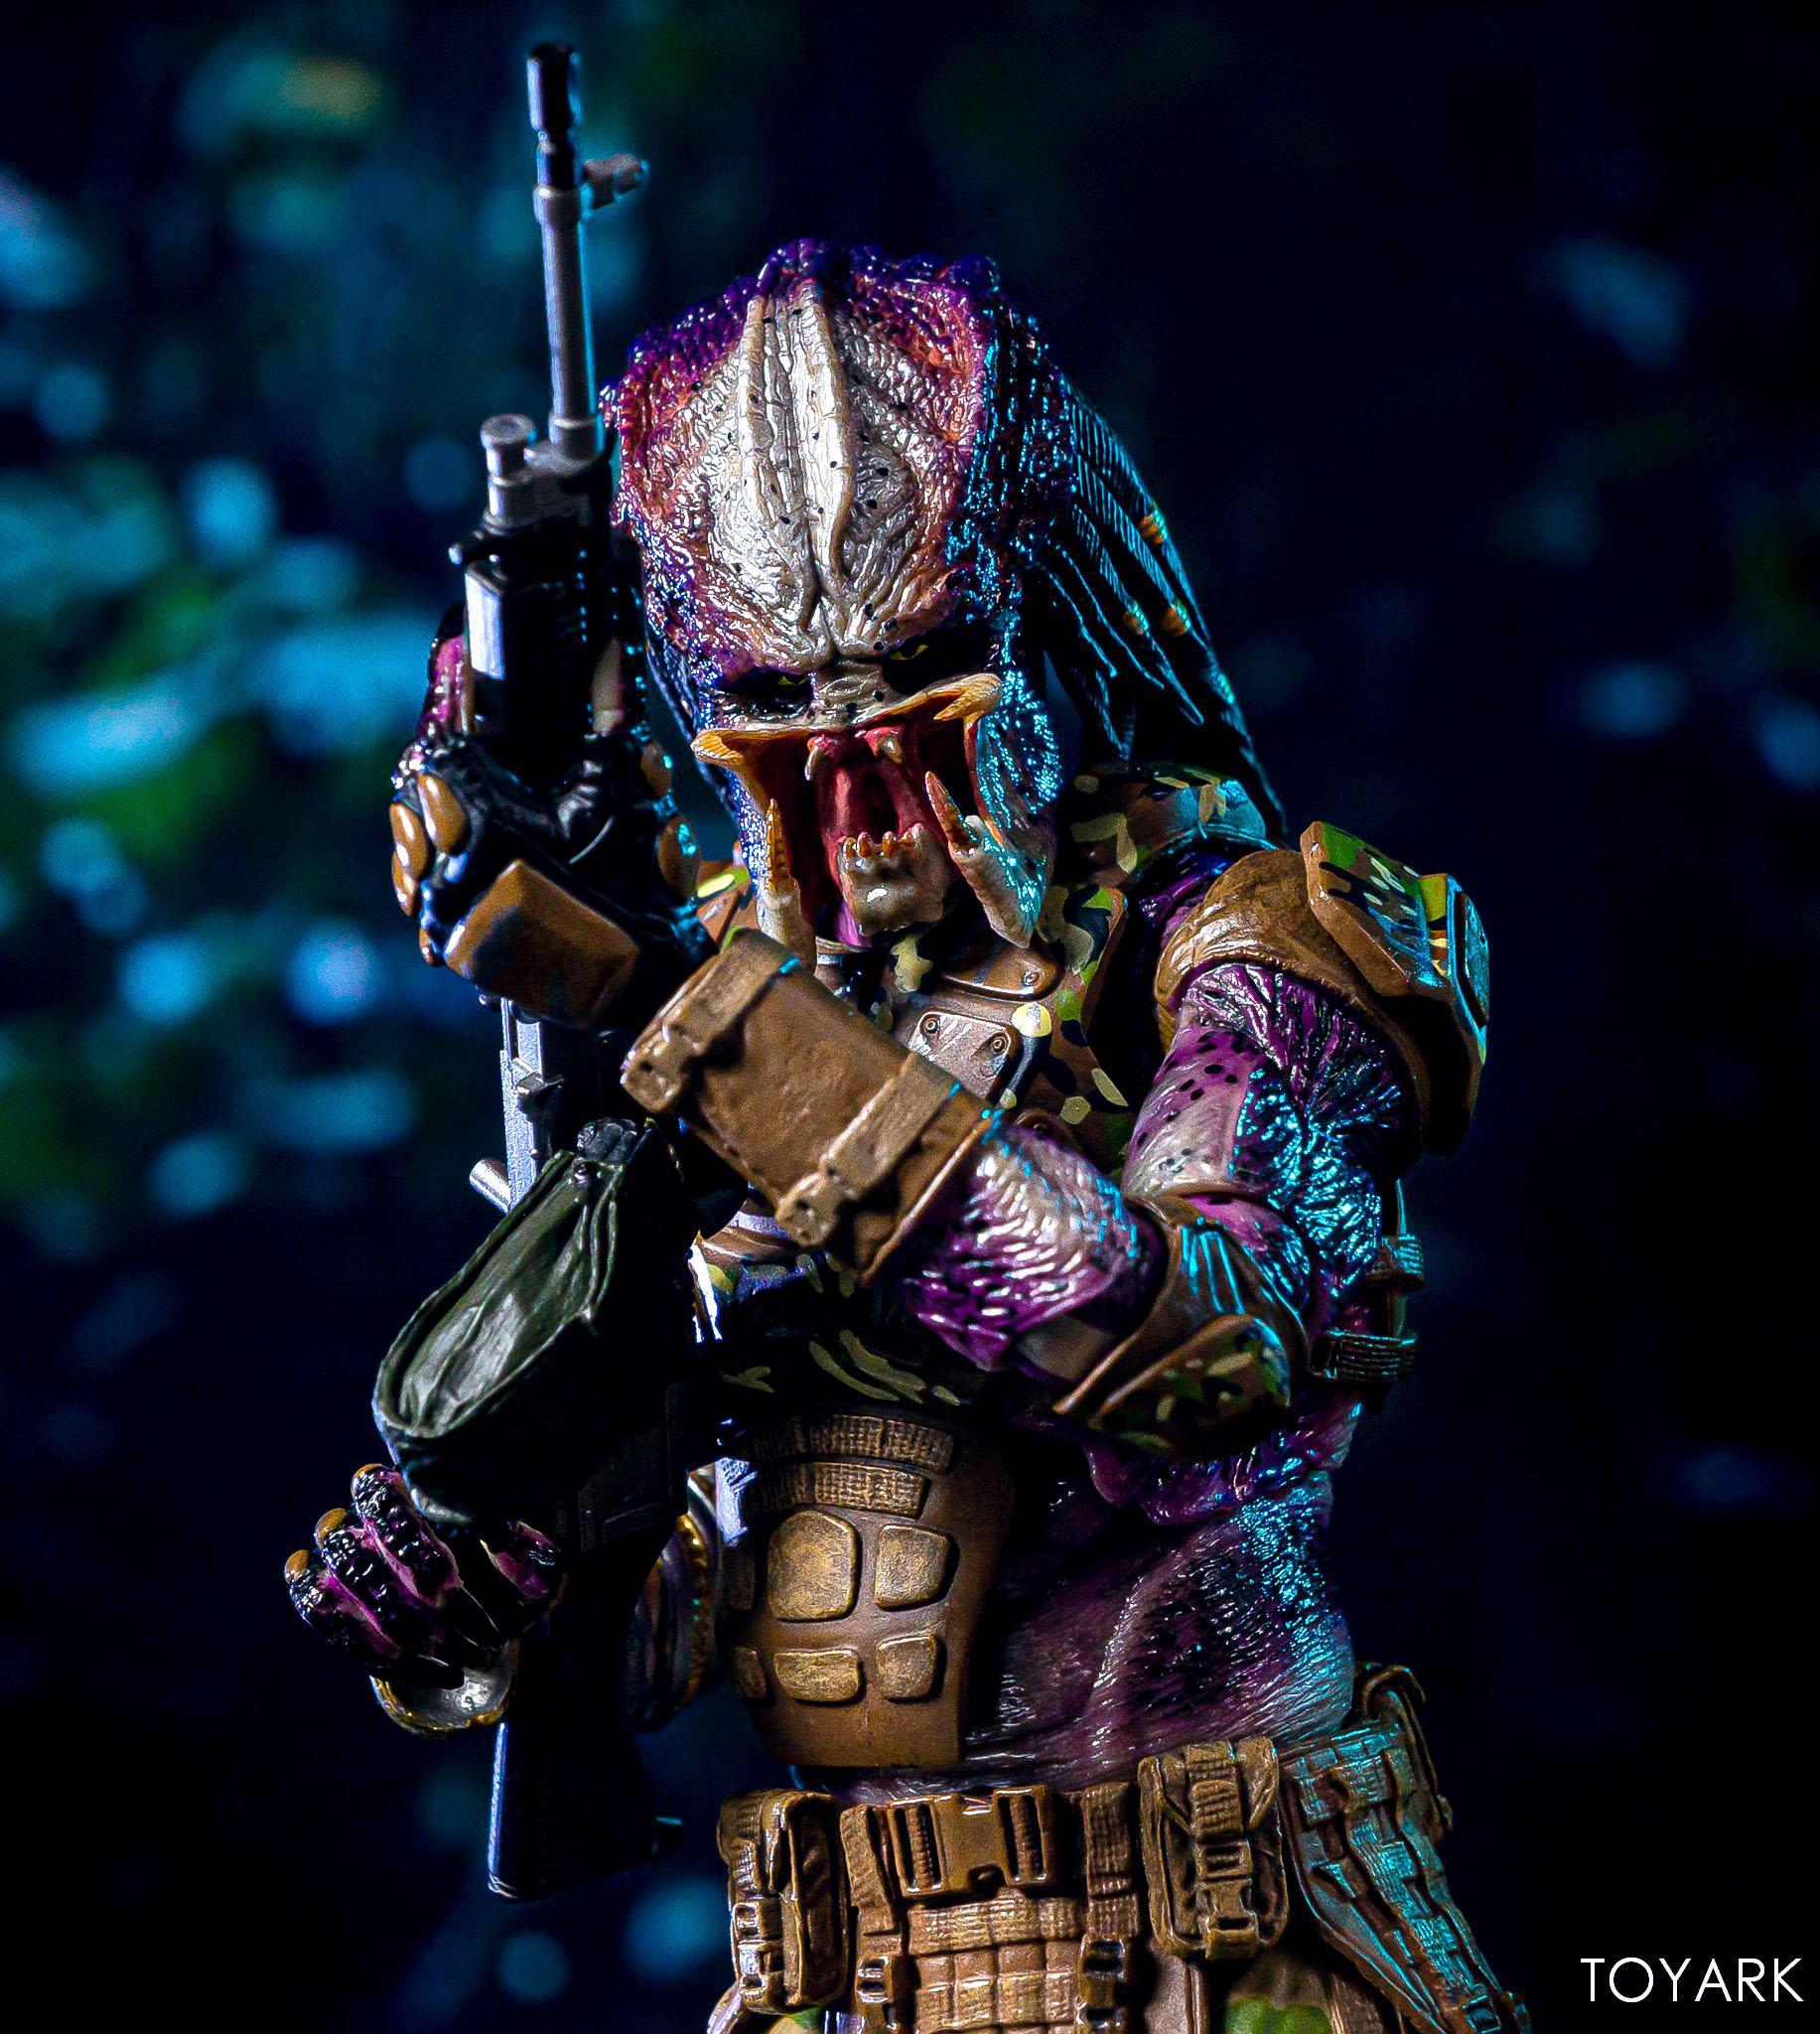 https://news.toyark.com/wp-content/uploads/sites/4/2019/05/Emissary-Predator-1-NECA-Figure-020.jpg